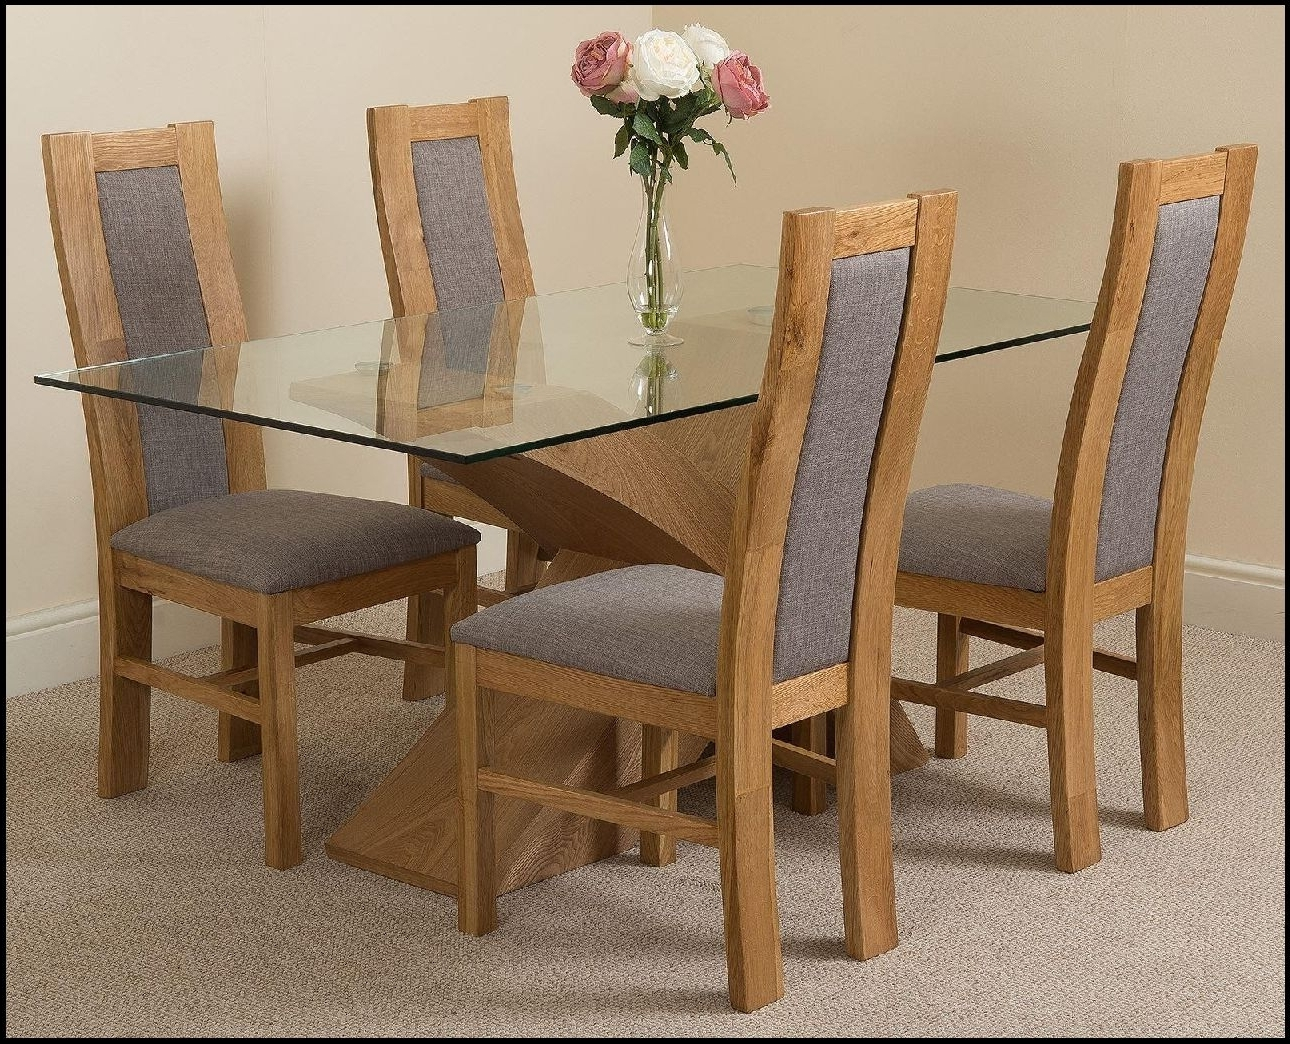 Sitiwhitegroook Pertaining To Oak And Glass Dining Tables Sets (View 24 of 25)